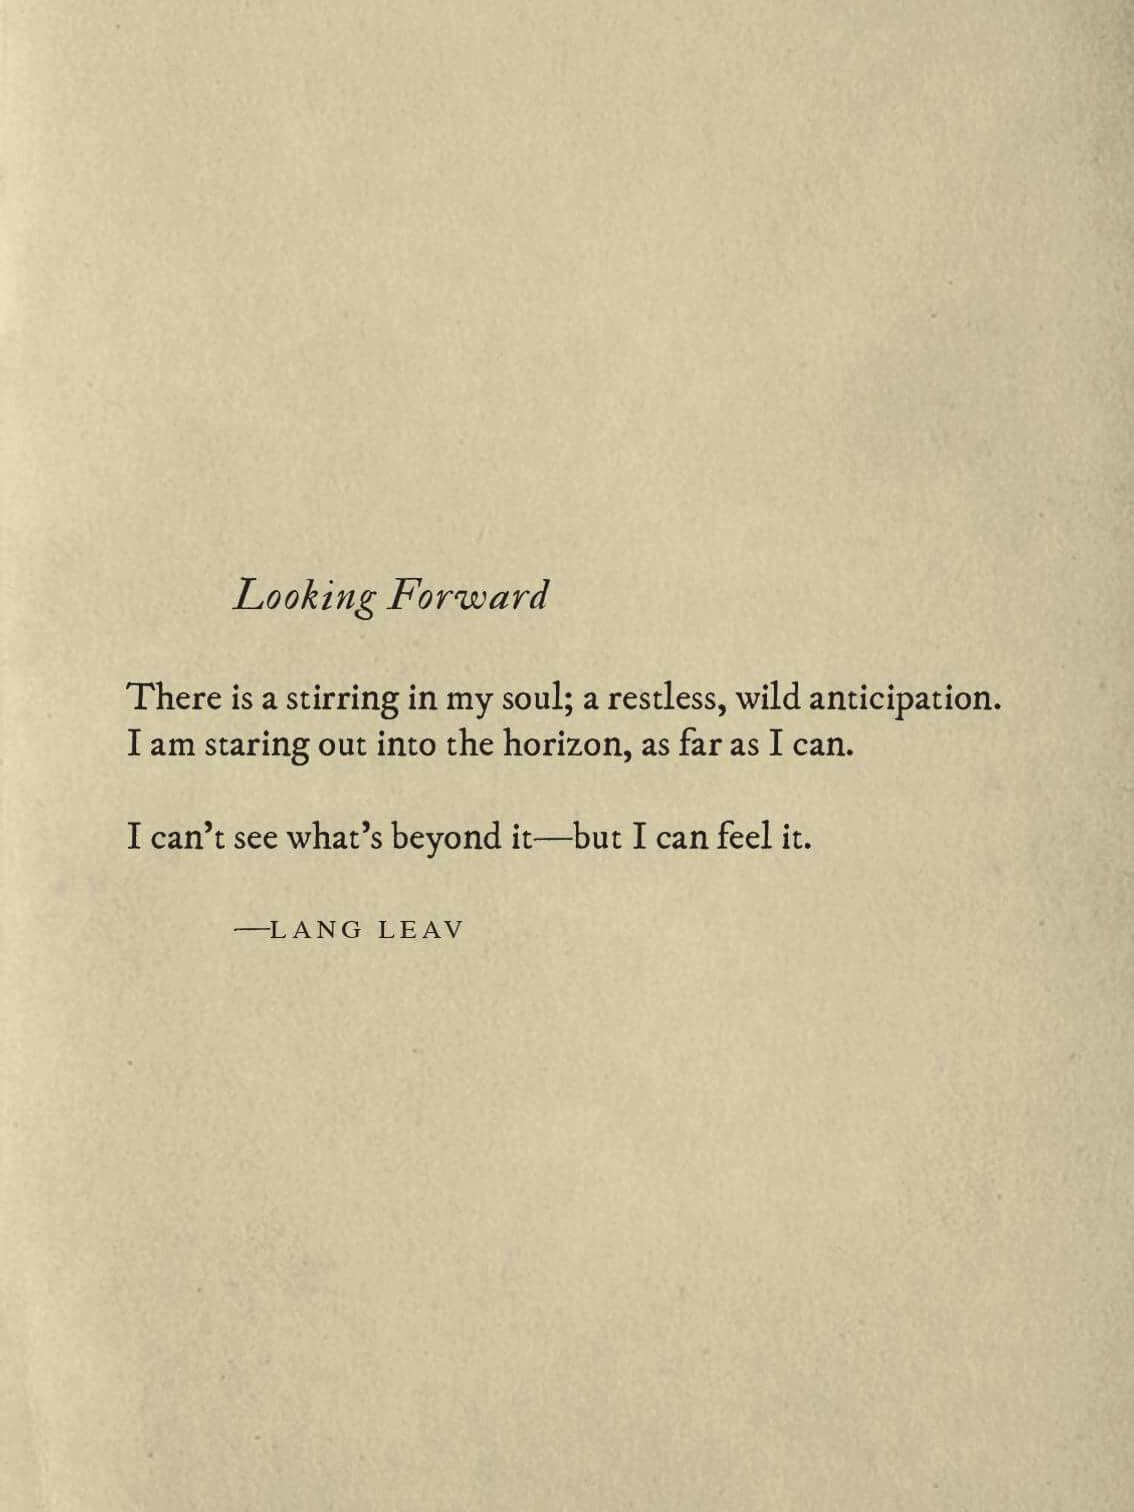 Looking Forward Quotes Simple Looking Forward #langleav  Beatitudes Of Life  Pinterest  Wisdom